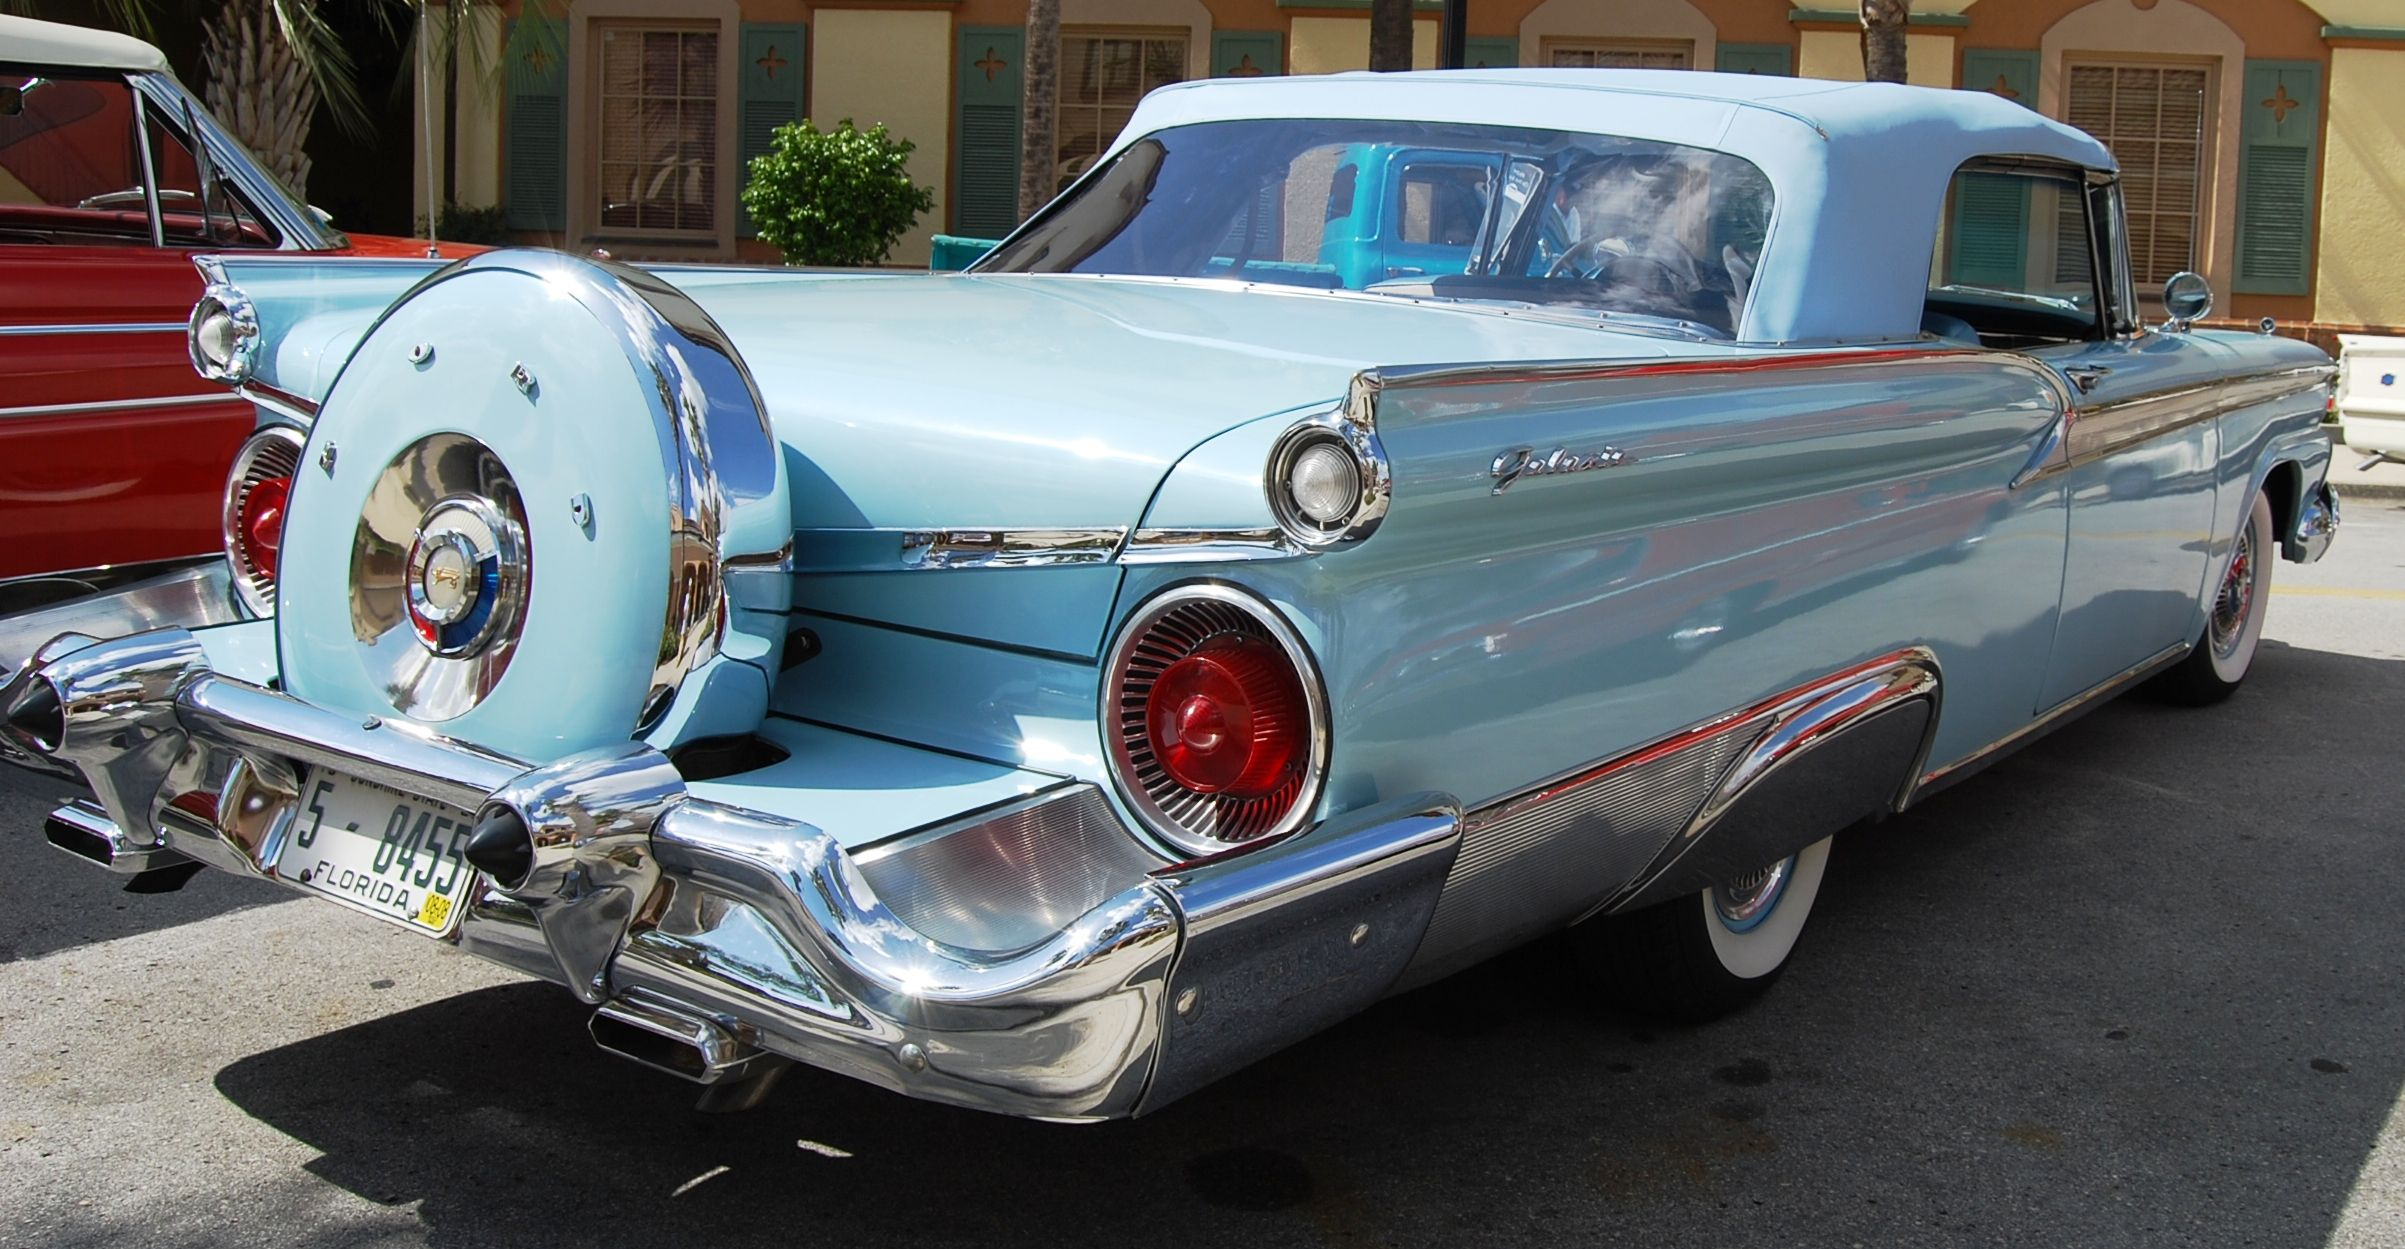 1959 Cars 1959 Ford Fairlane Convertible This Is My Car